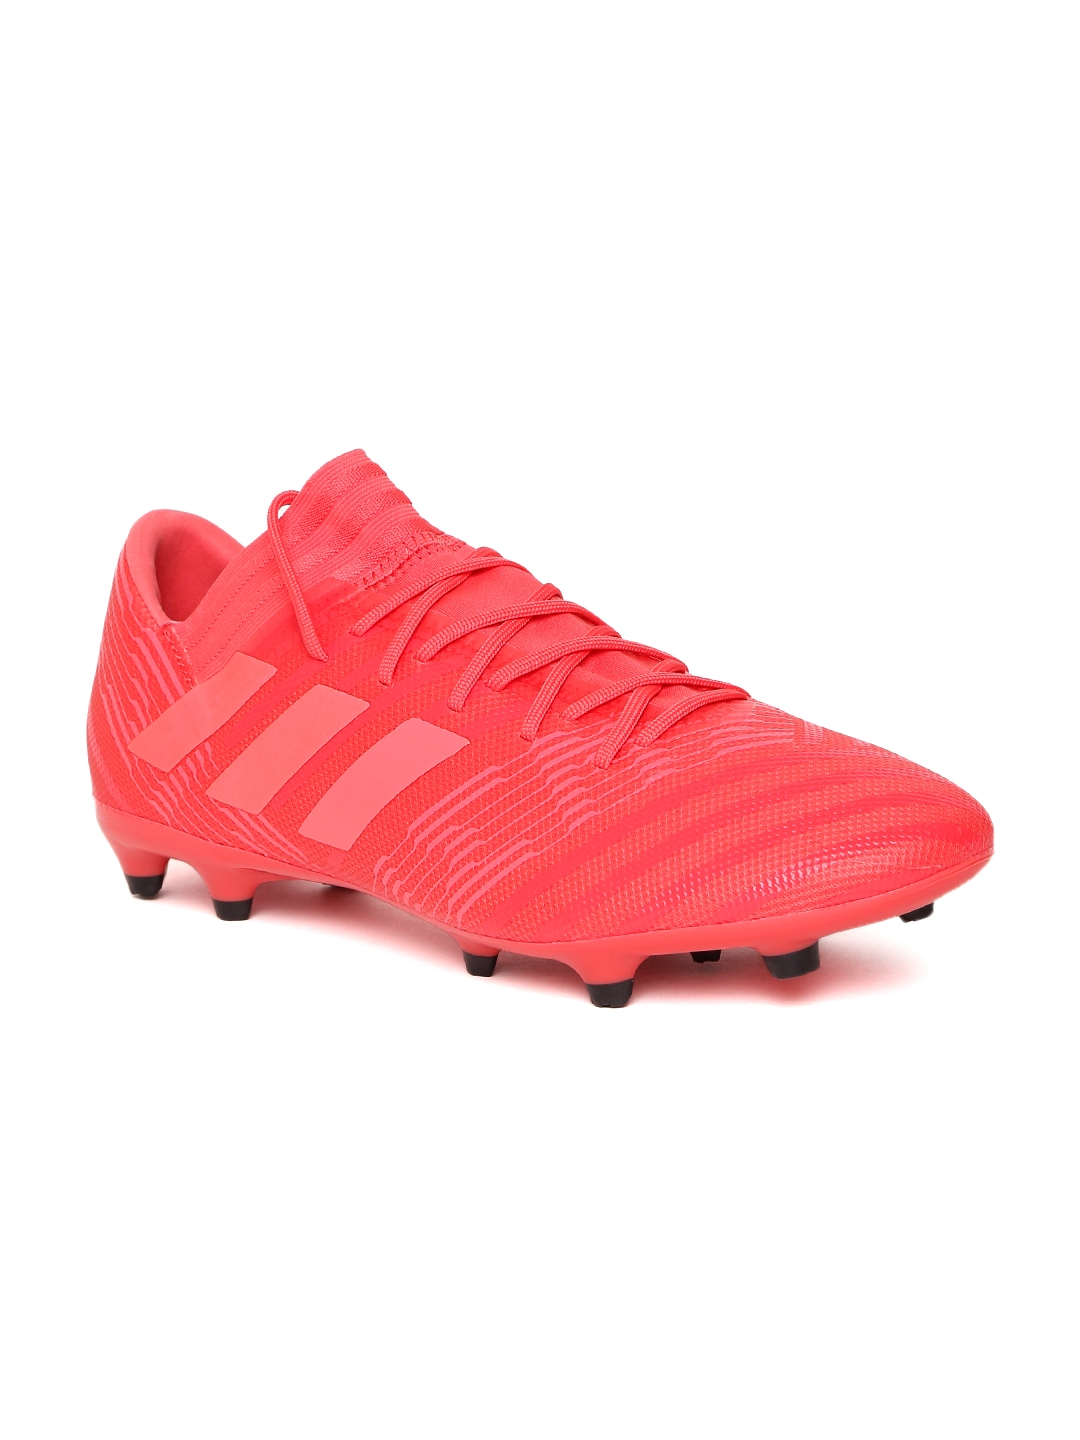 8c42d397df9e Buy ADIDAS Men Coral Orange NEMEZIZ 17.3 FG Football Shoes - Sports ...